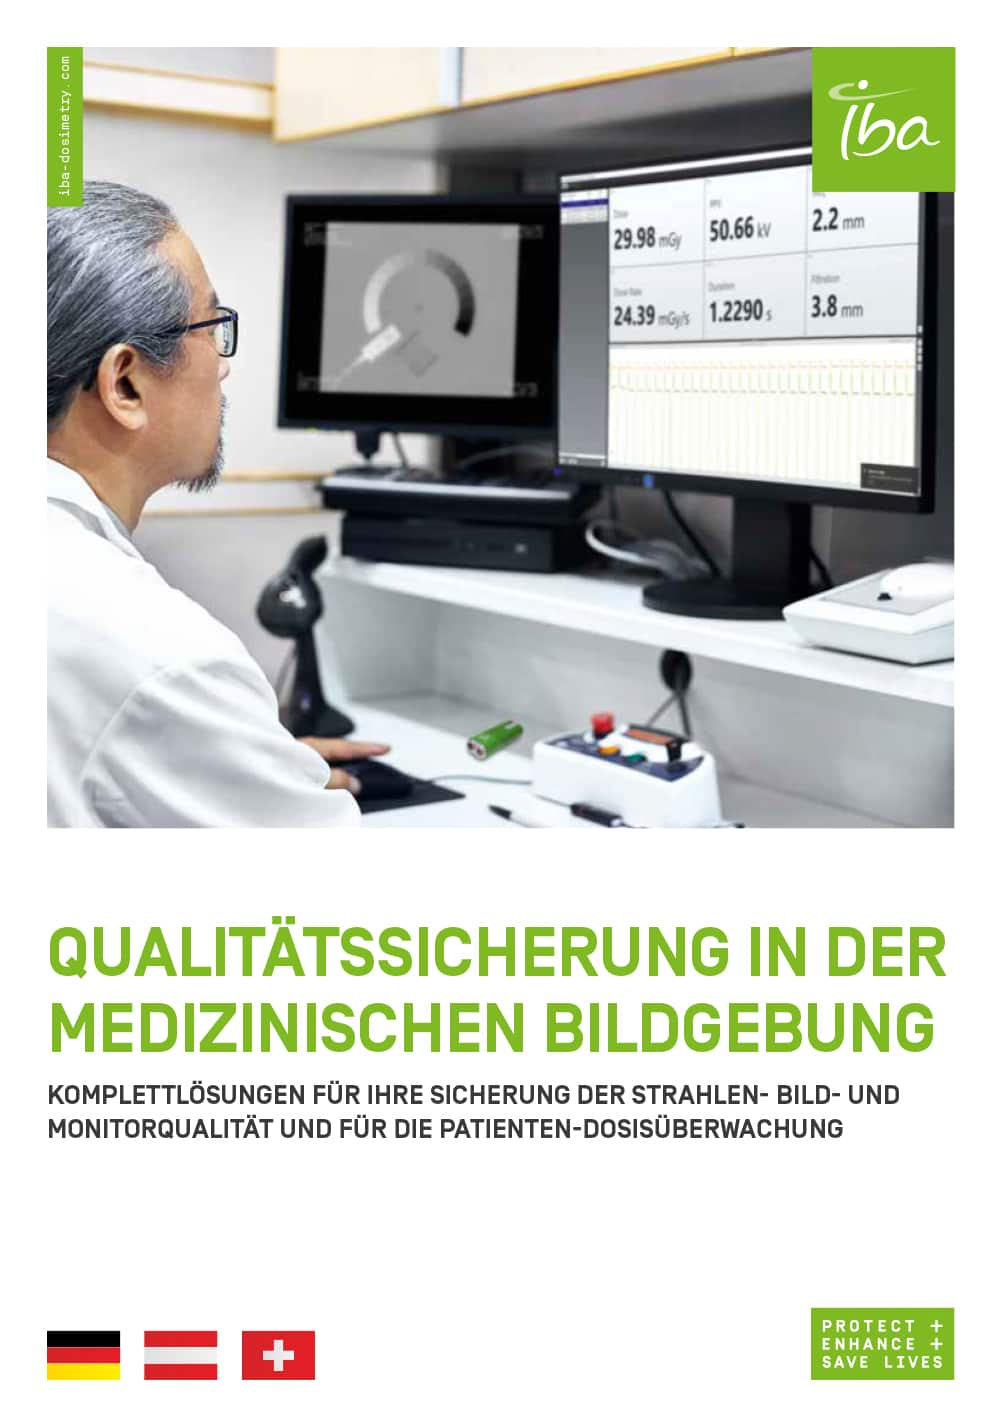 IBA Dosimetry Medical Imaging Products German